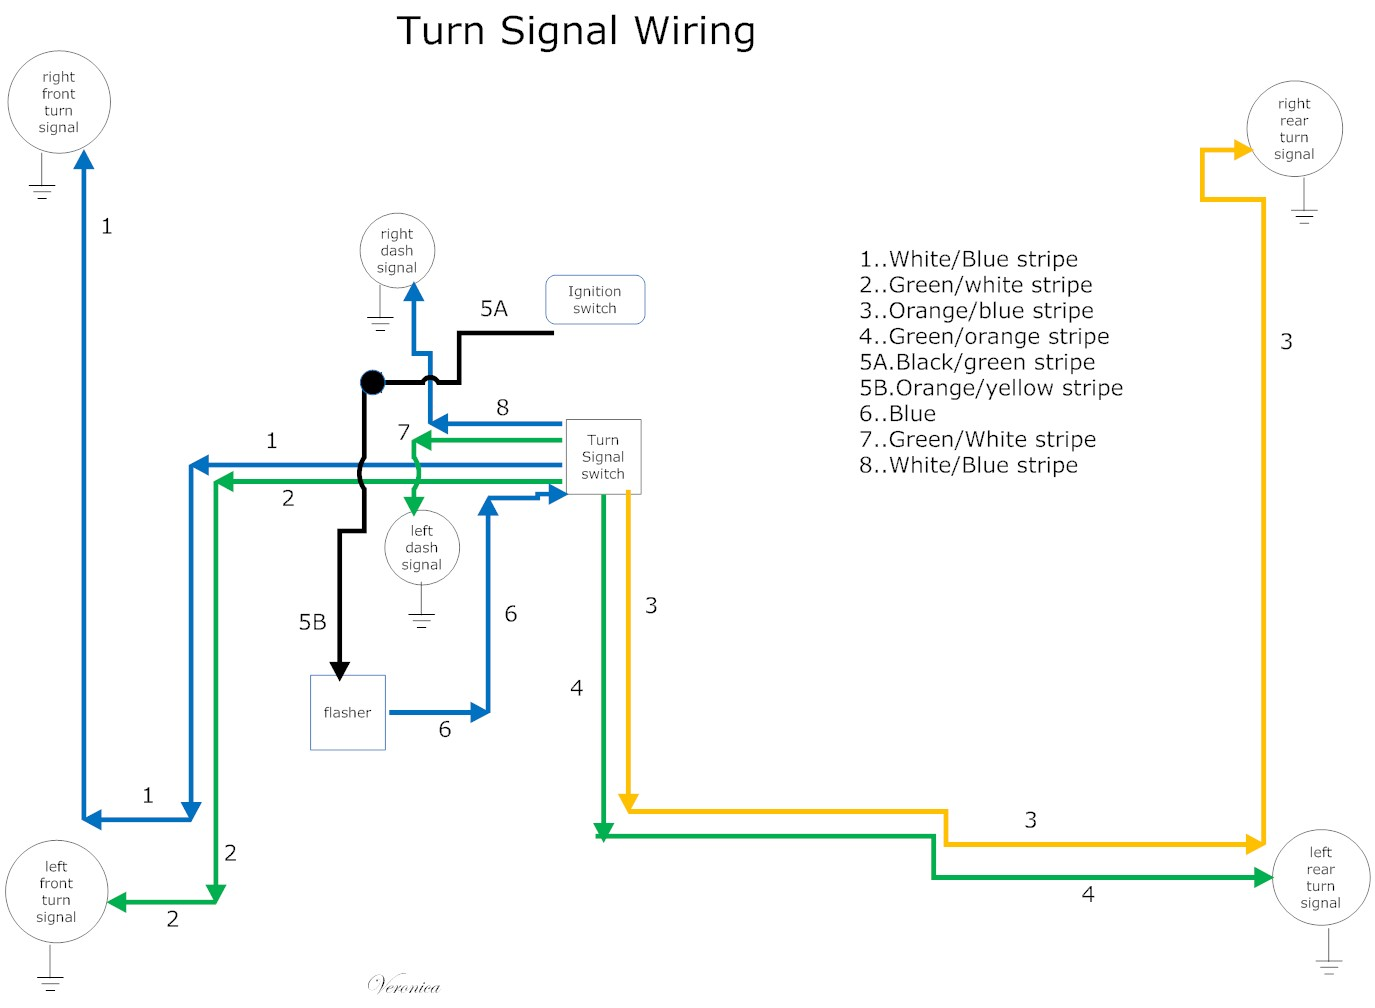 Turn+signal+Wiring 2015 mustang wiring diagram schematic mustang 2015 \u2022 free wiring 1966 mustang wiring harness kit at n-0.co